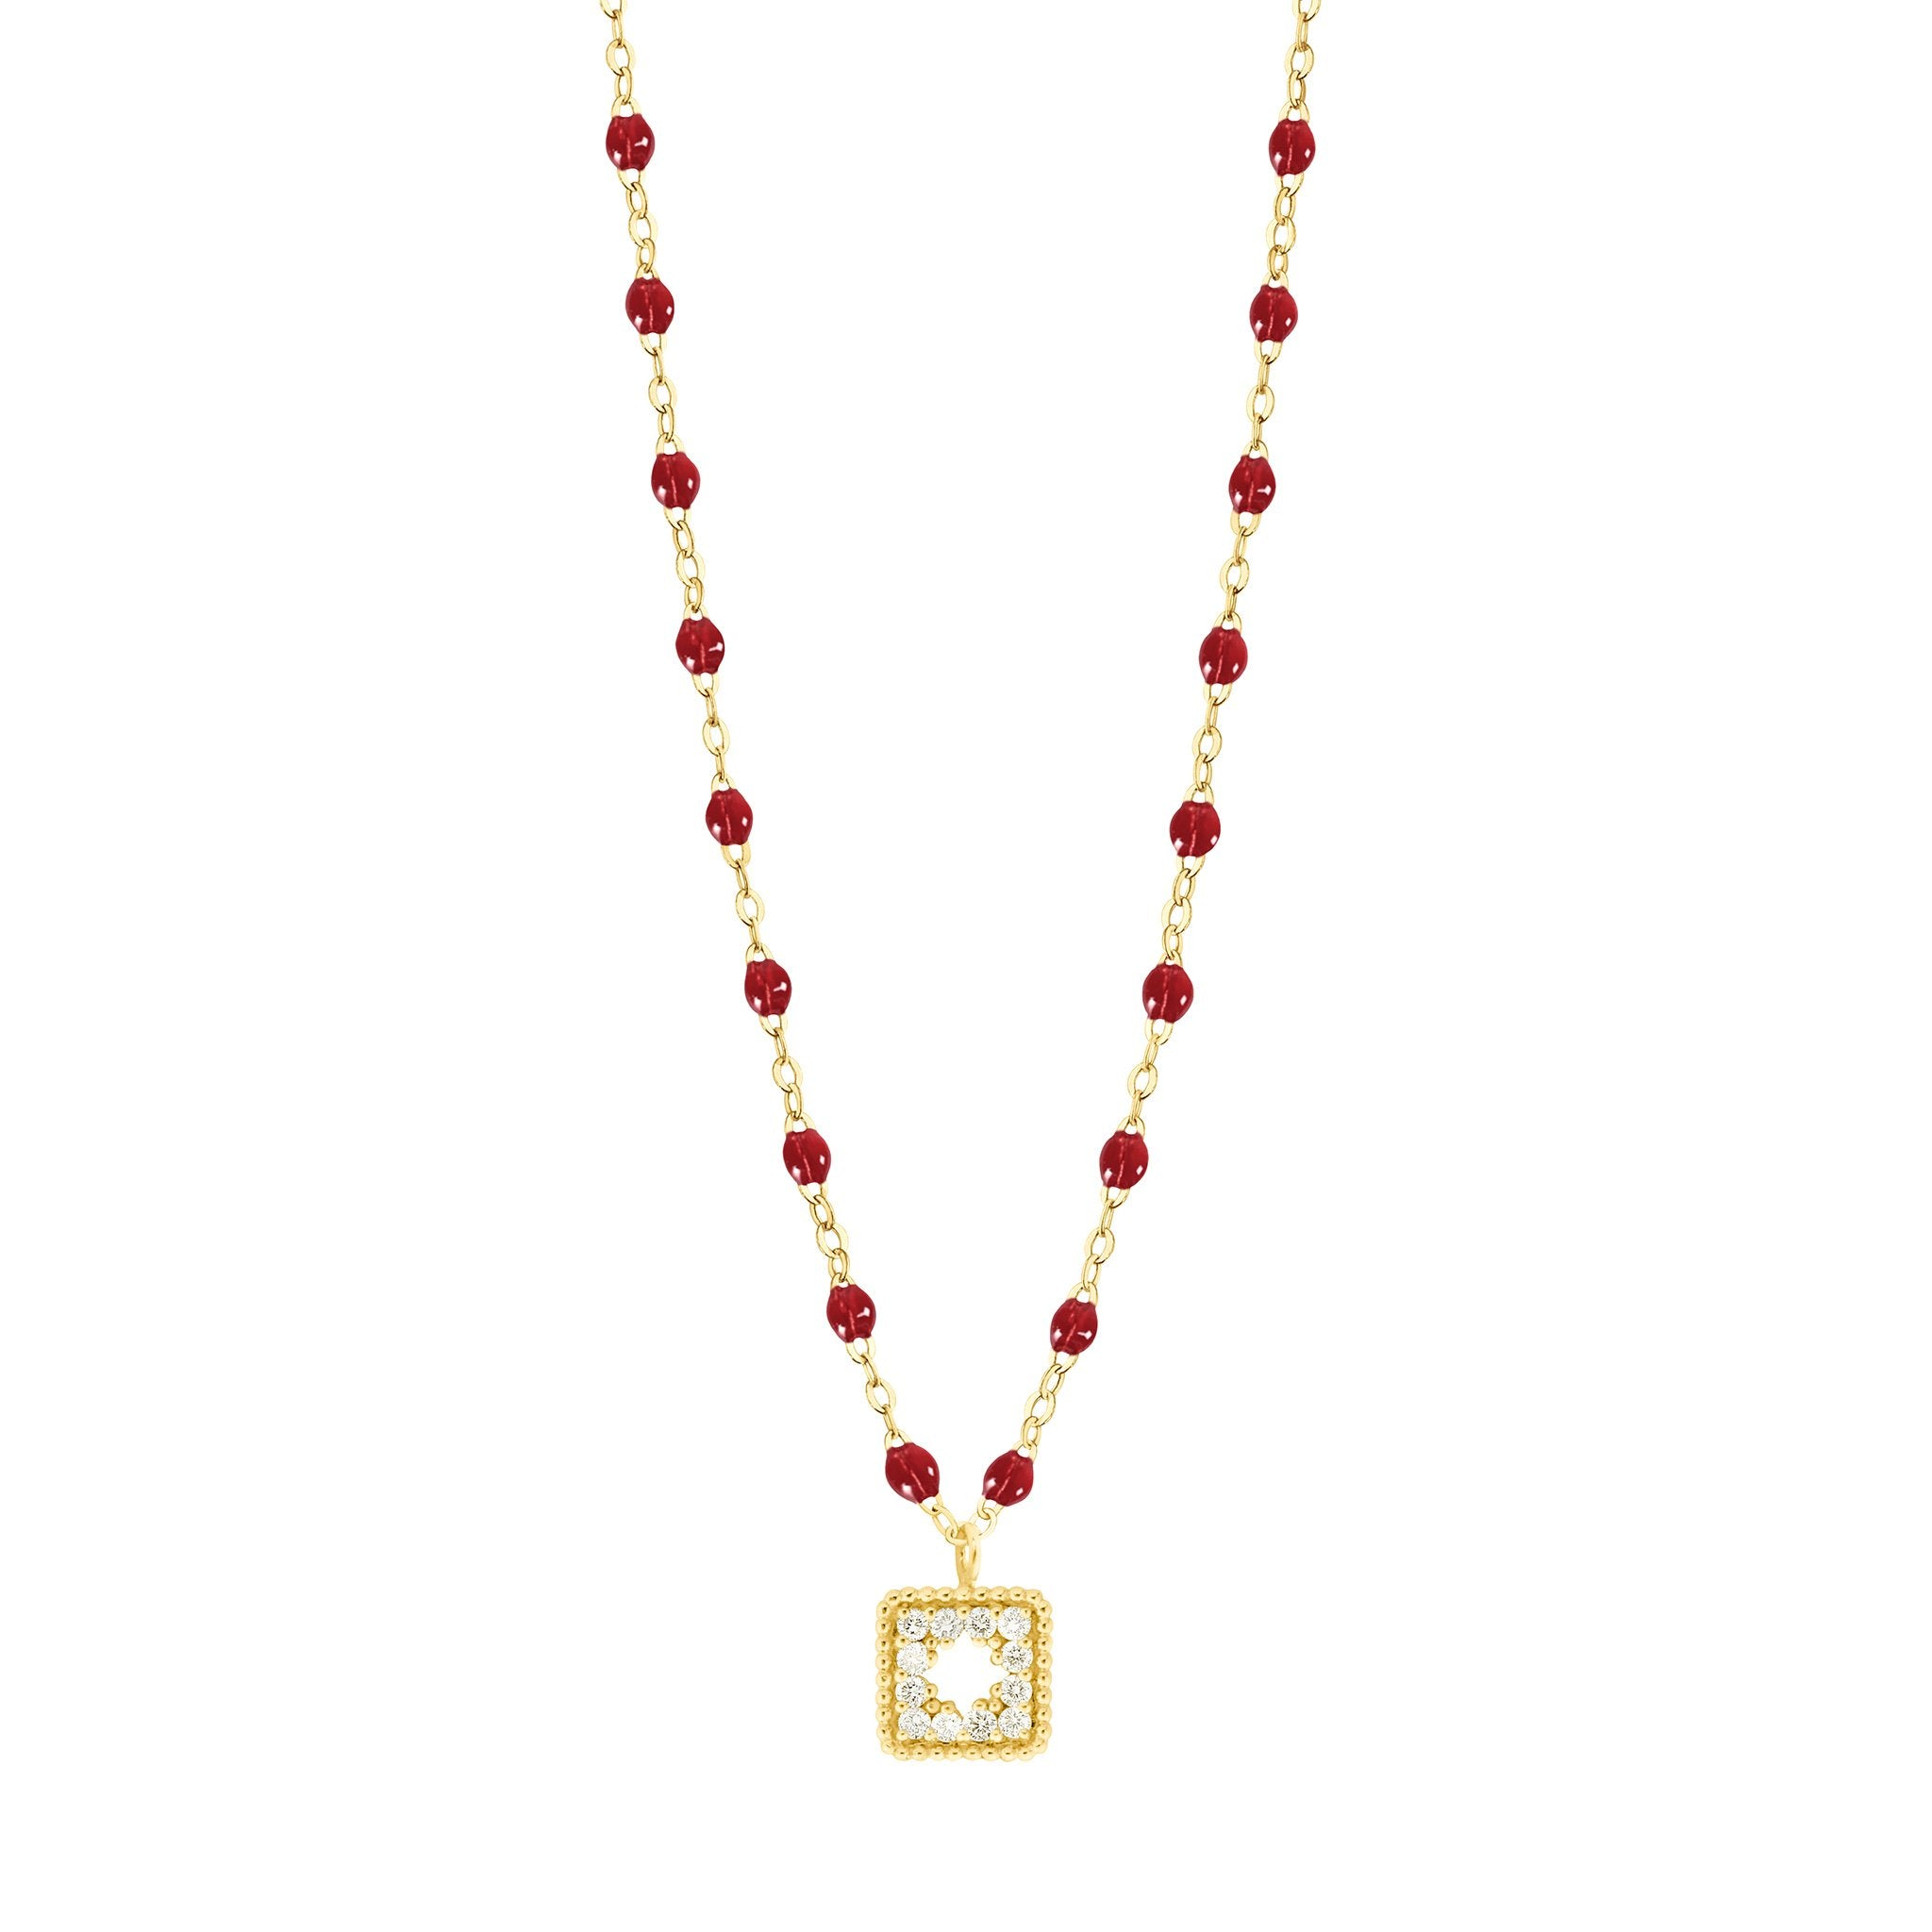 Gigi Clozeau - Classic Gigi Cherry Treasure Necklace Yellow Gold, 16.5